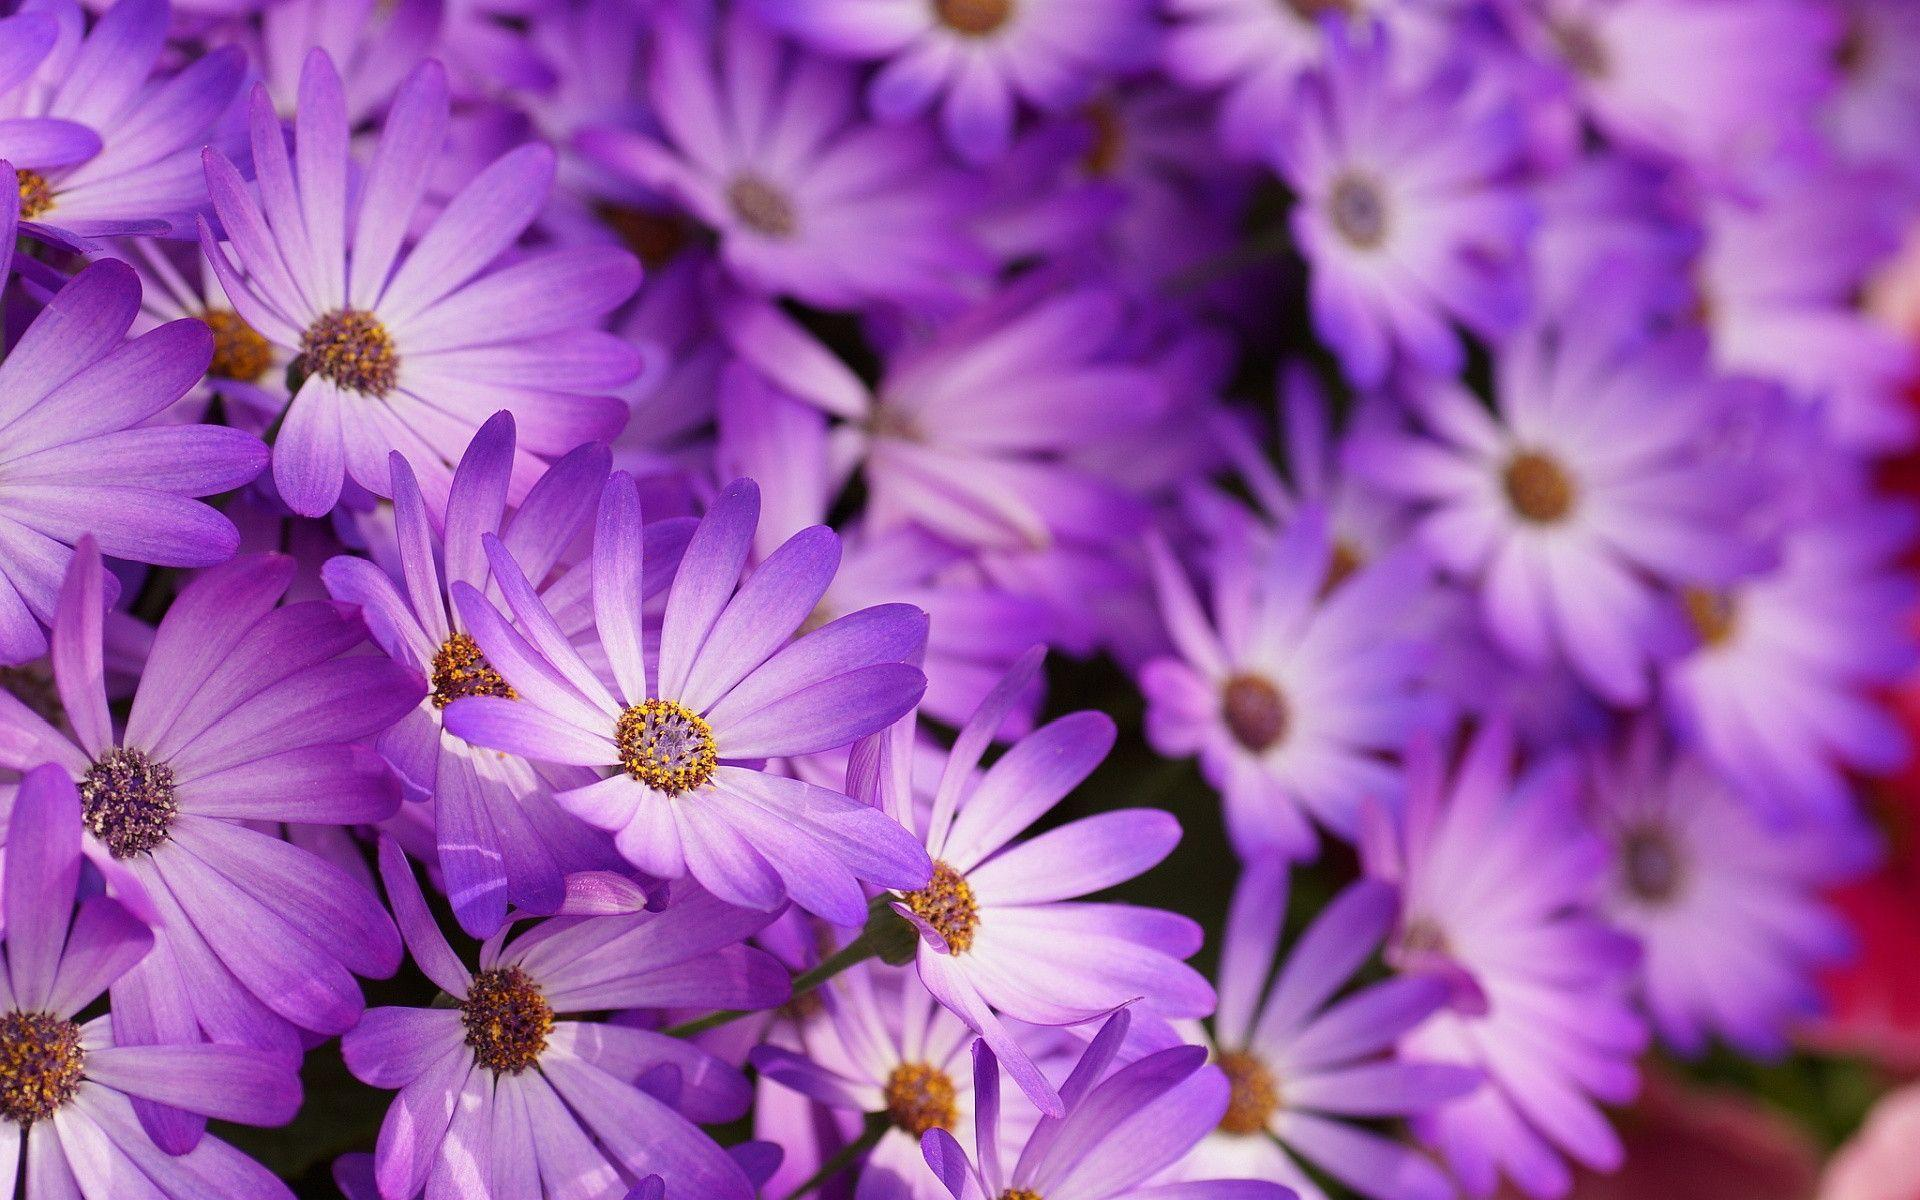 Purple Flowers Wallpapers   Wallpaper Cave Purple Flowers Wallpapers   Full HD wallpaper search   page 8